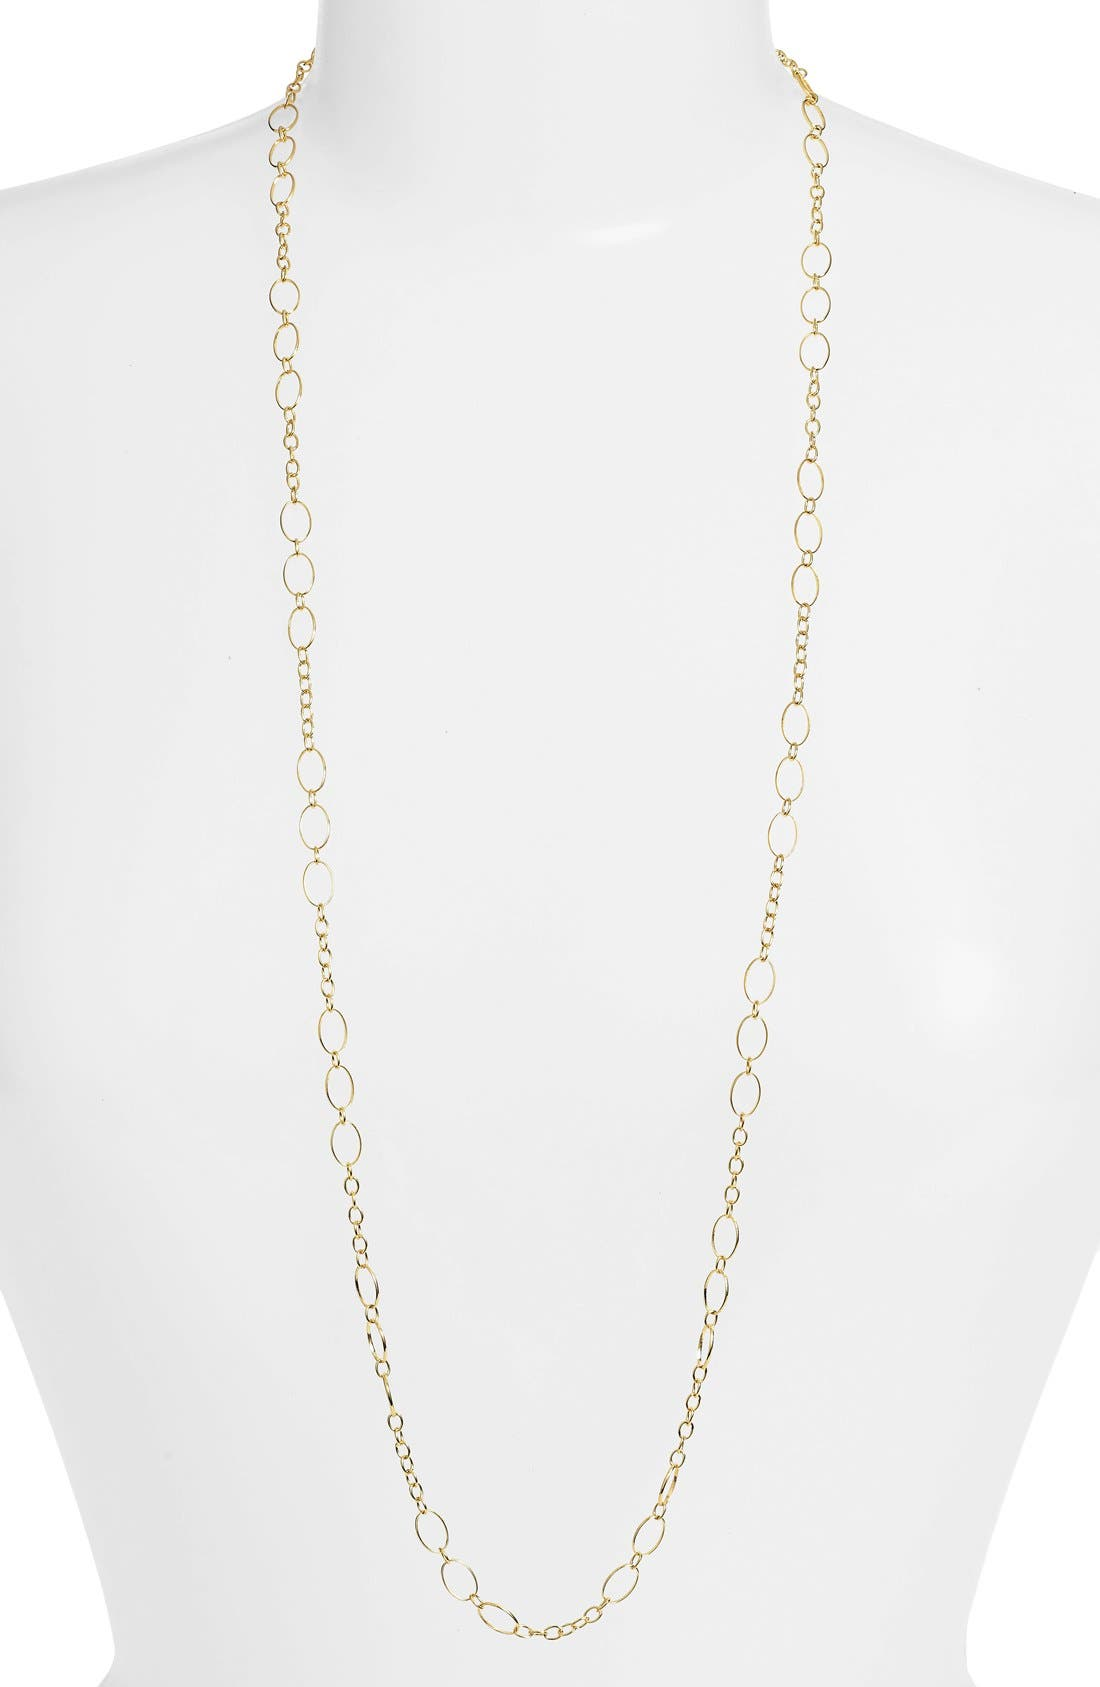 36-Inch Layering Chain,                             Main thumbnail 1, color,                             GOLD